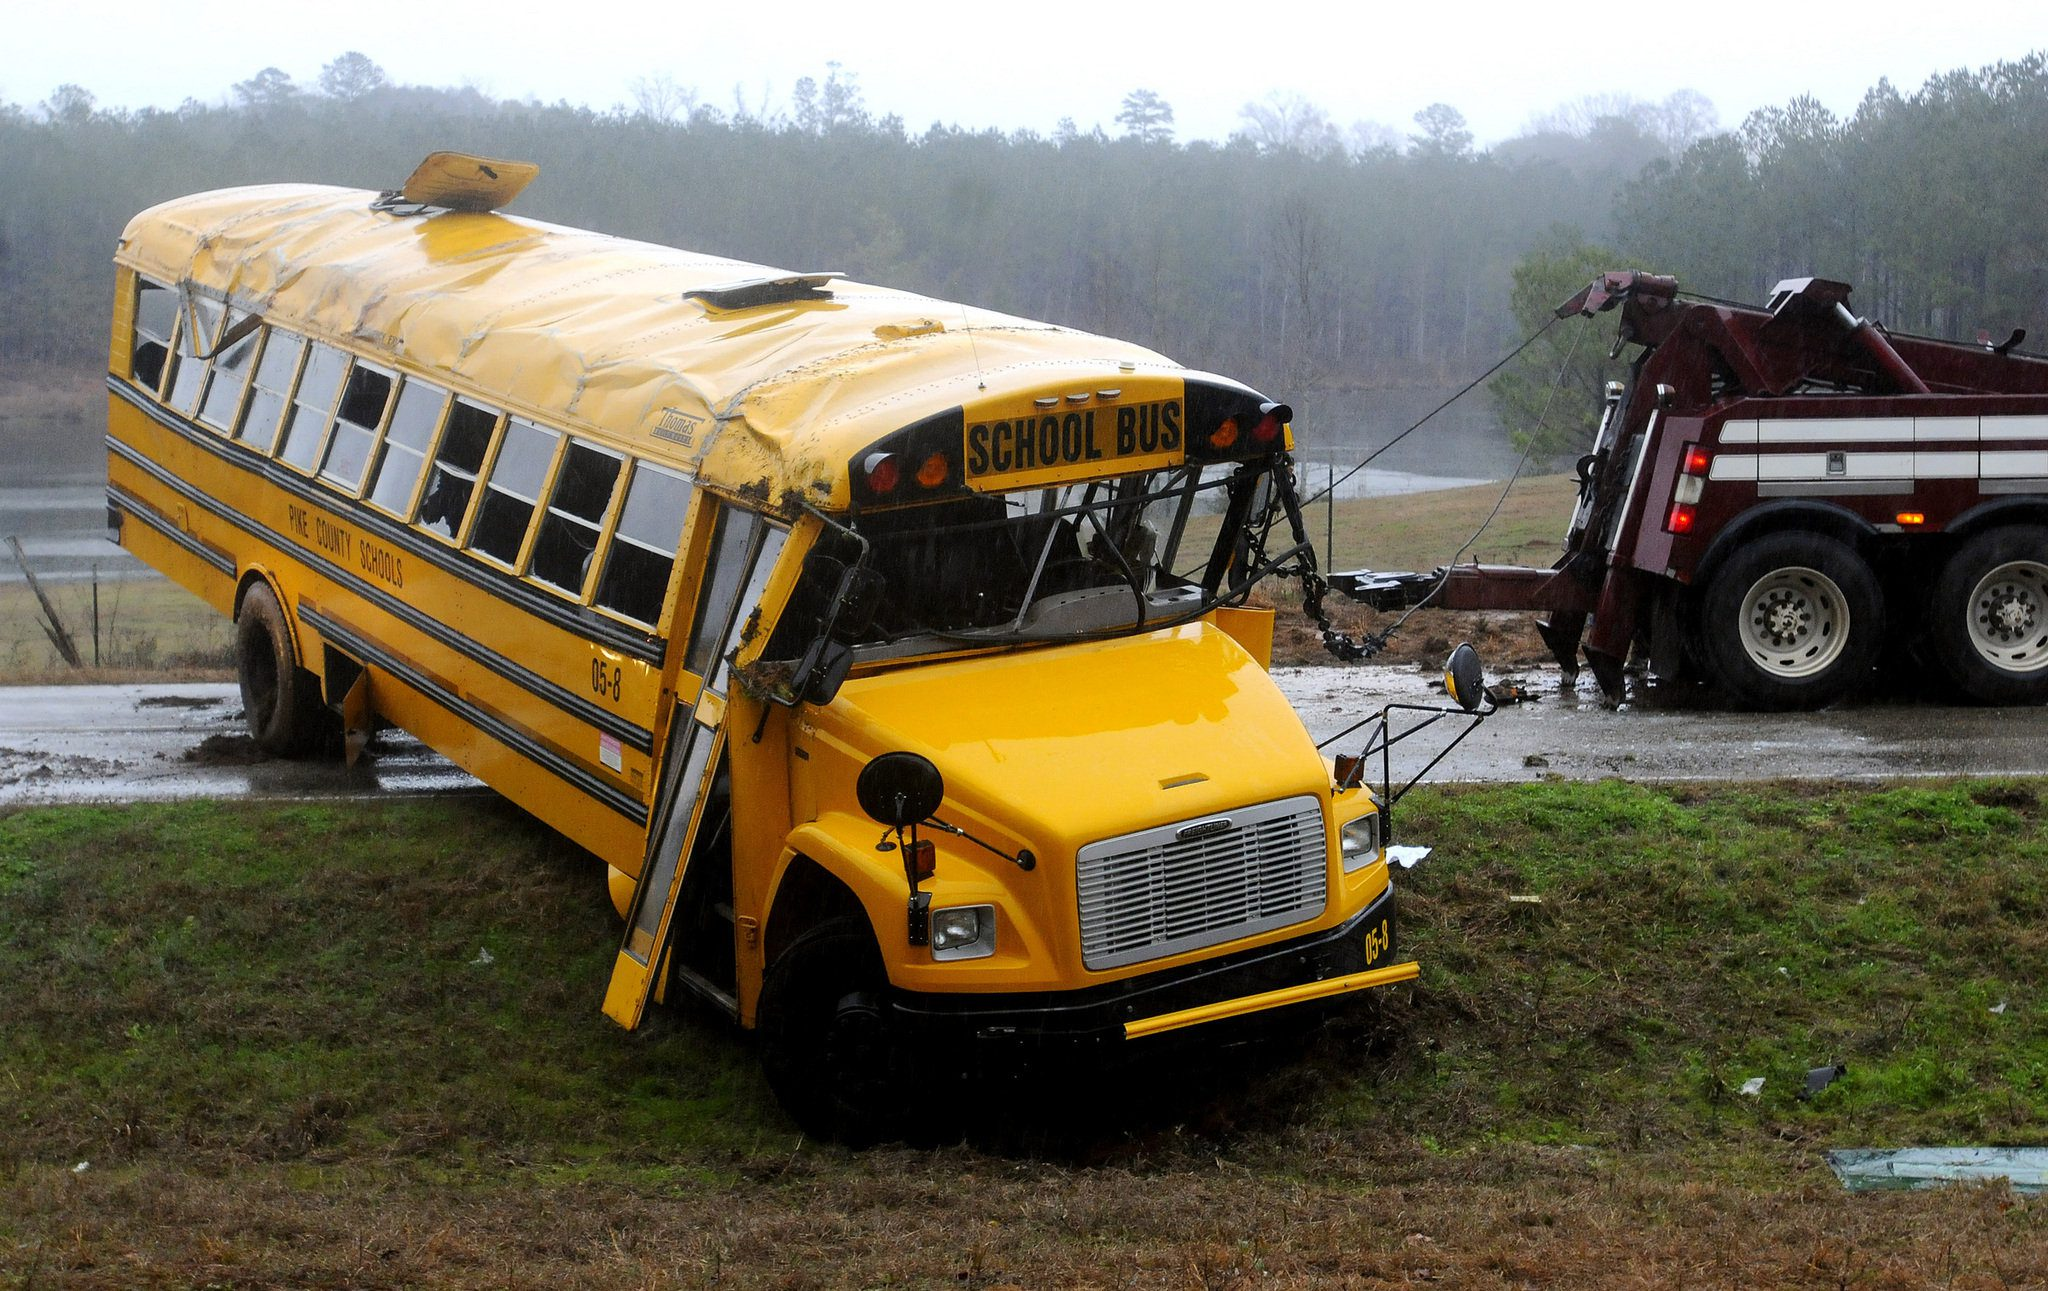 1 crashed bus